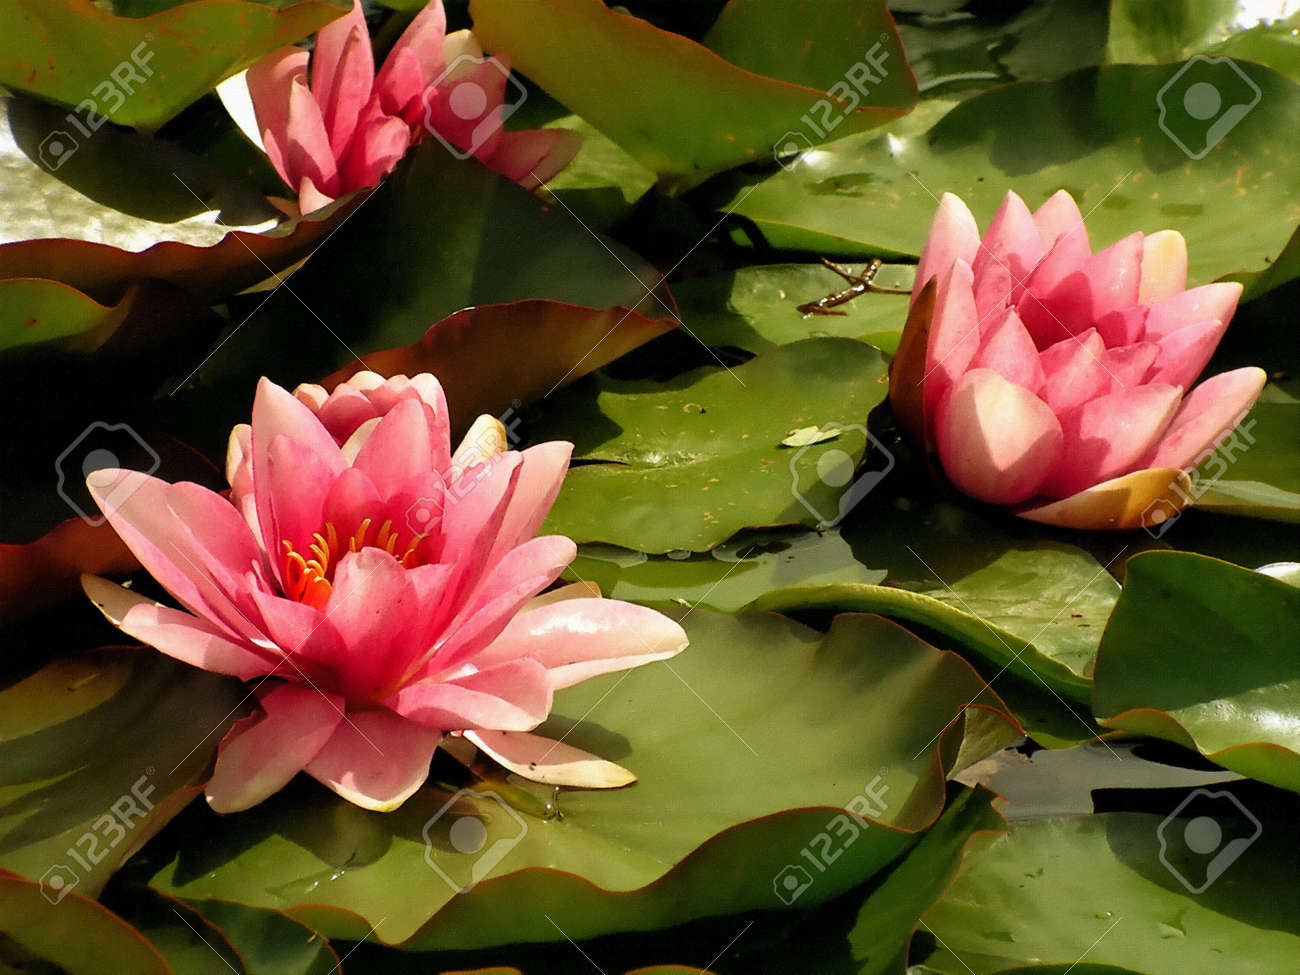 Water lily images stock pictures royalty free water lily photos water lily pink water lilies dhlflorist Images